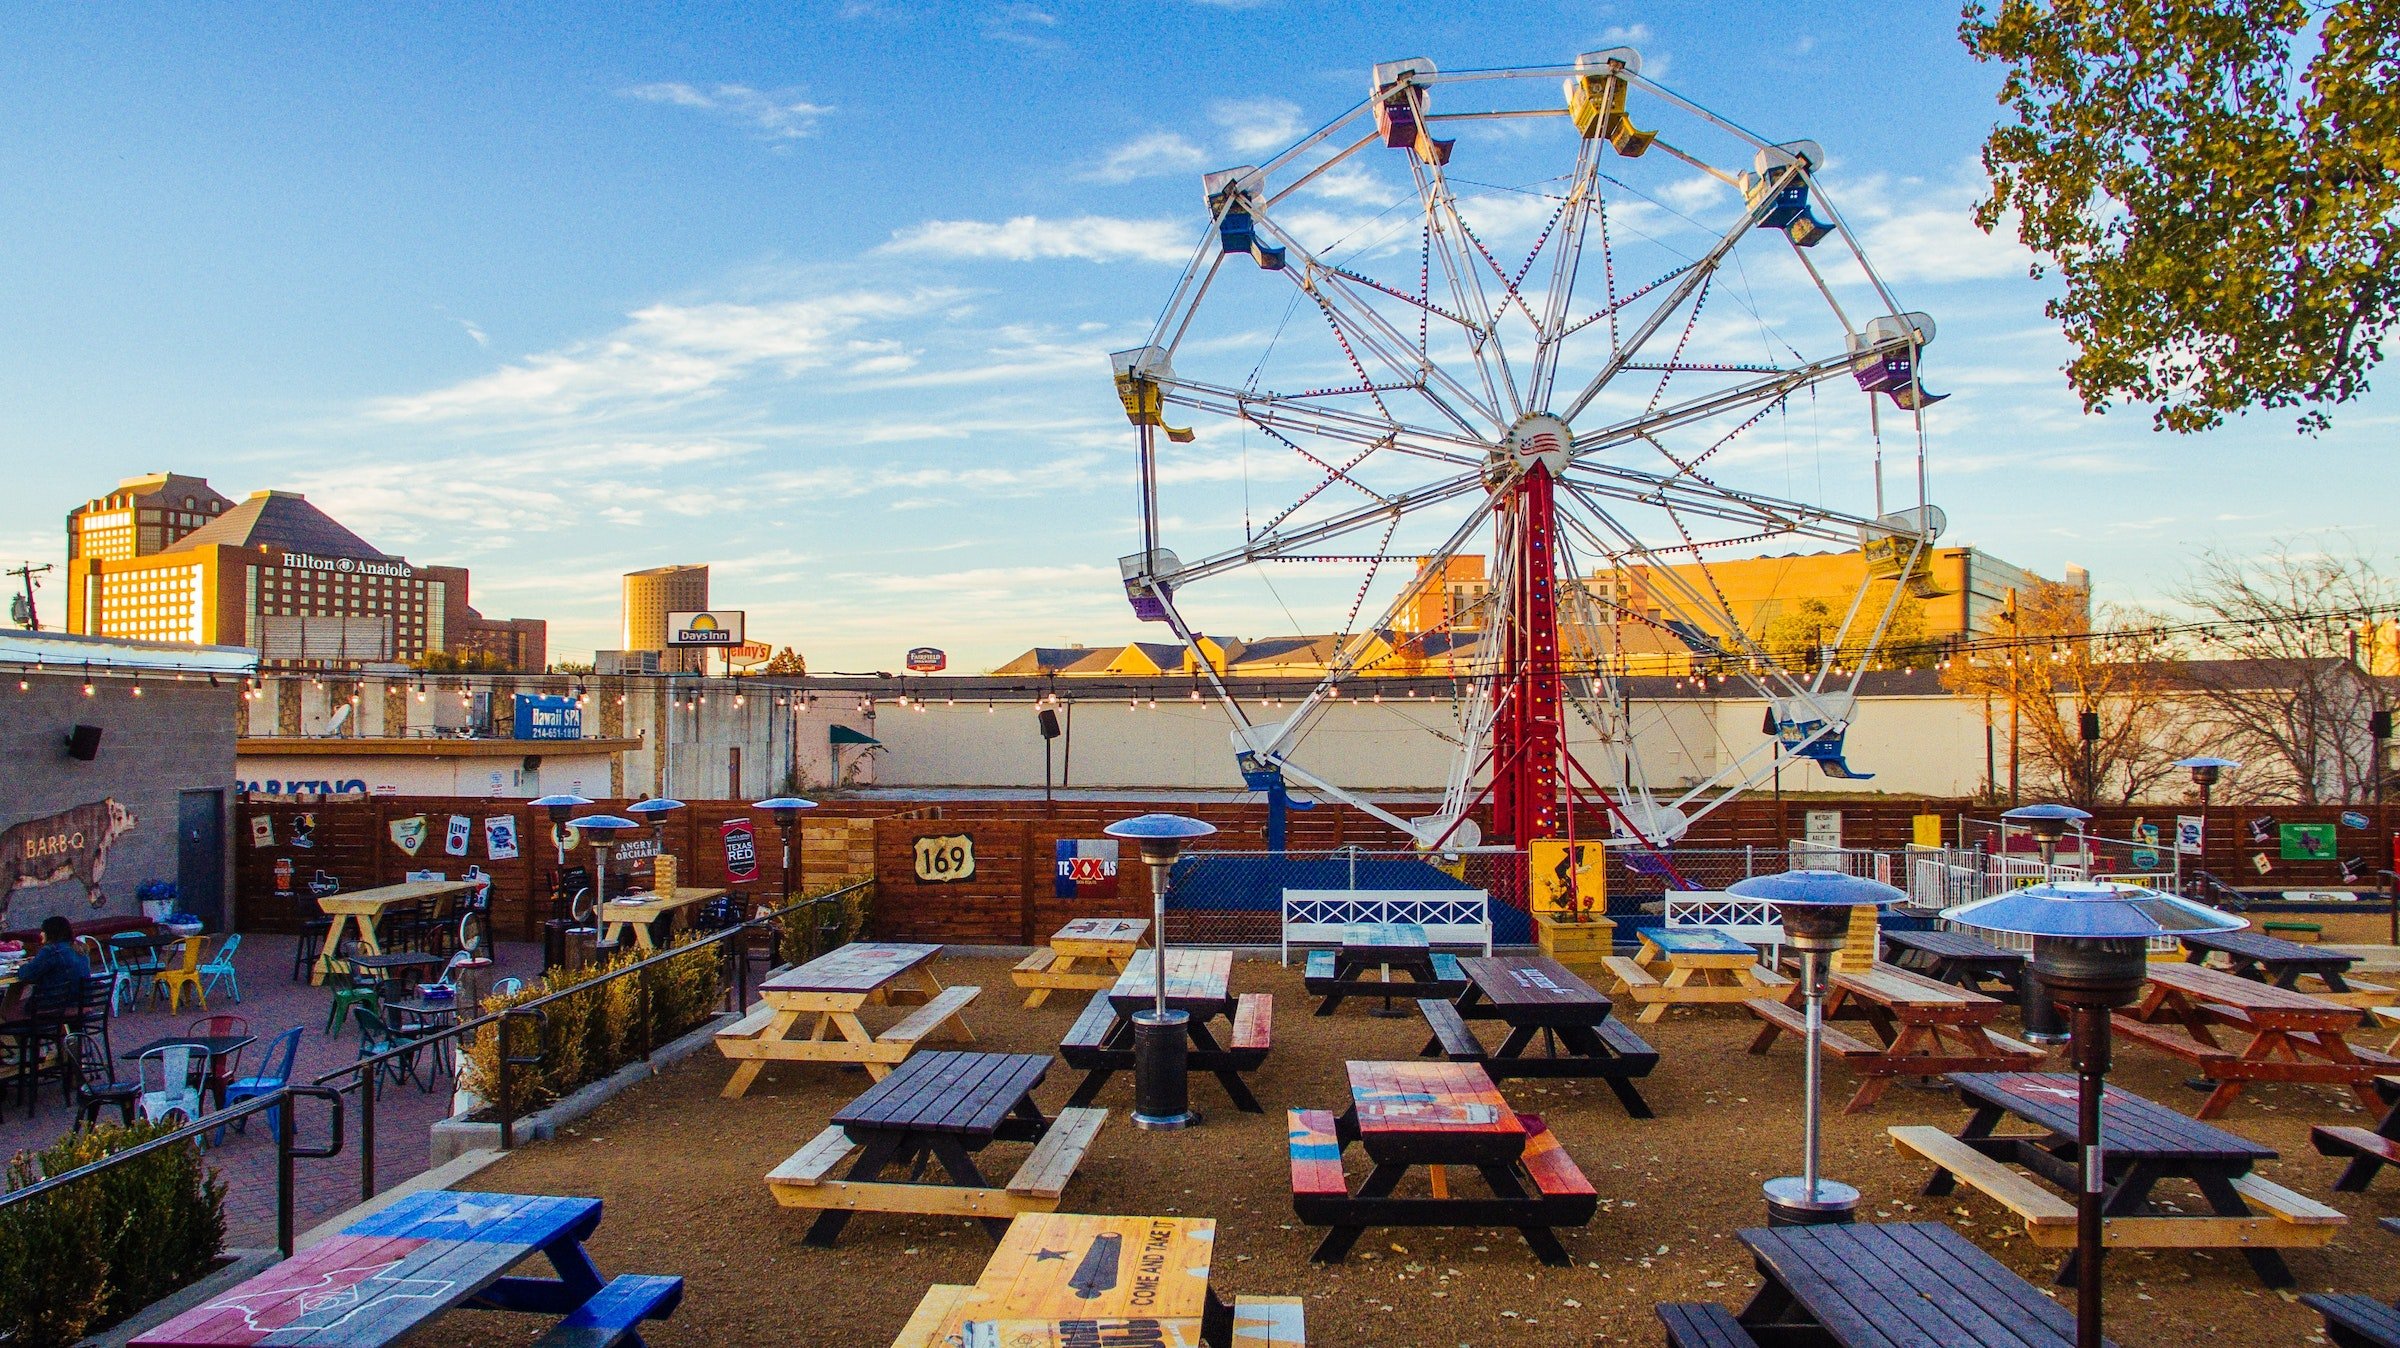 Ferris Wheelers Backyard & BBQ in Beyond Dallas